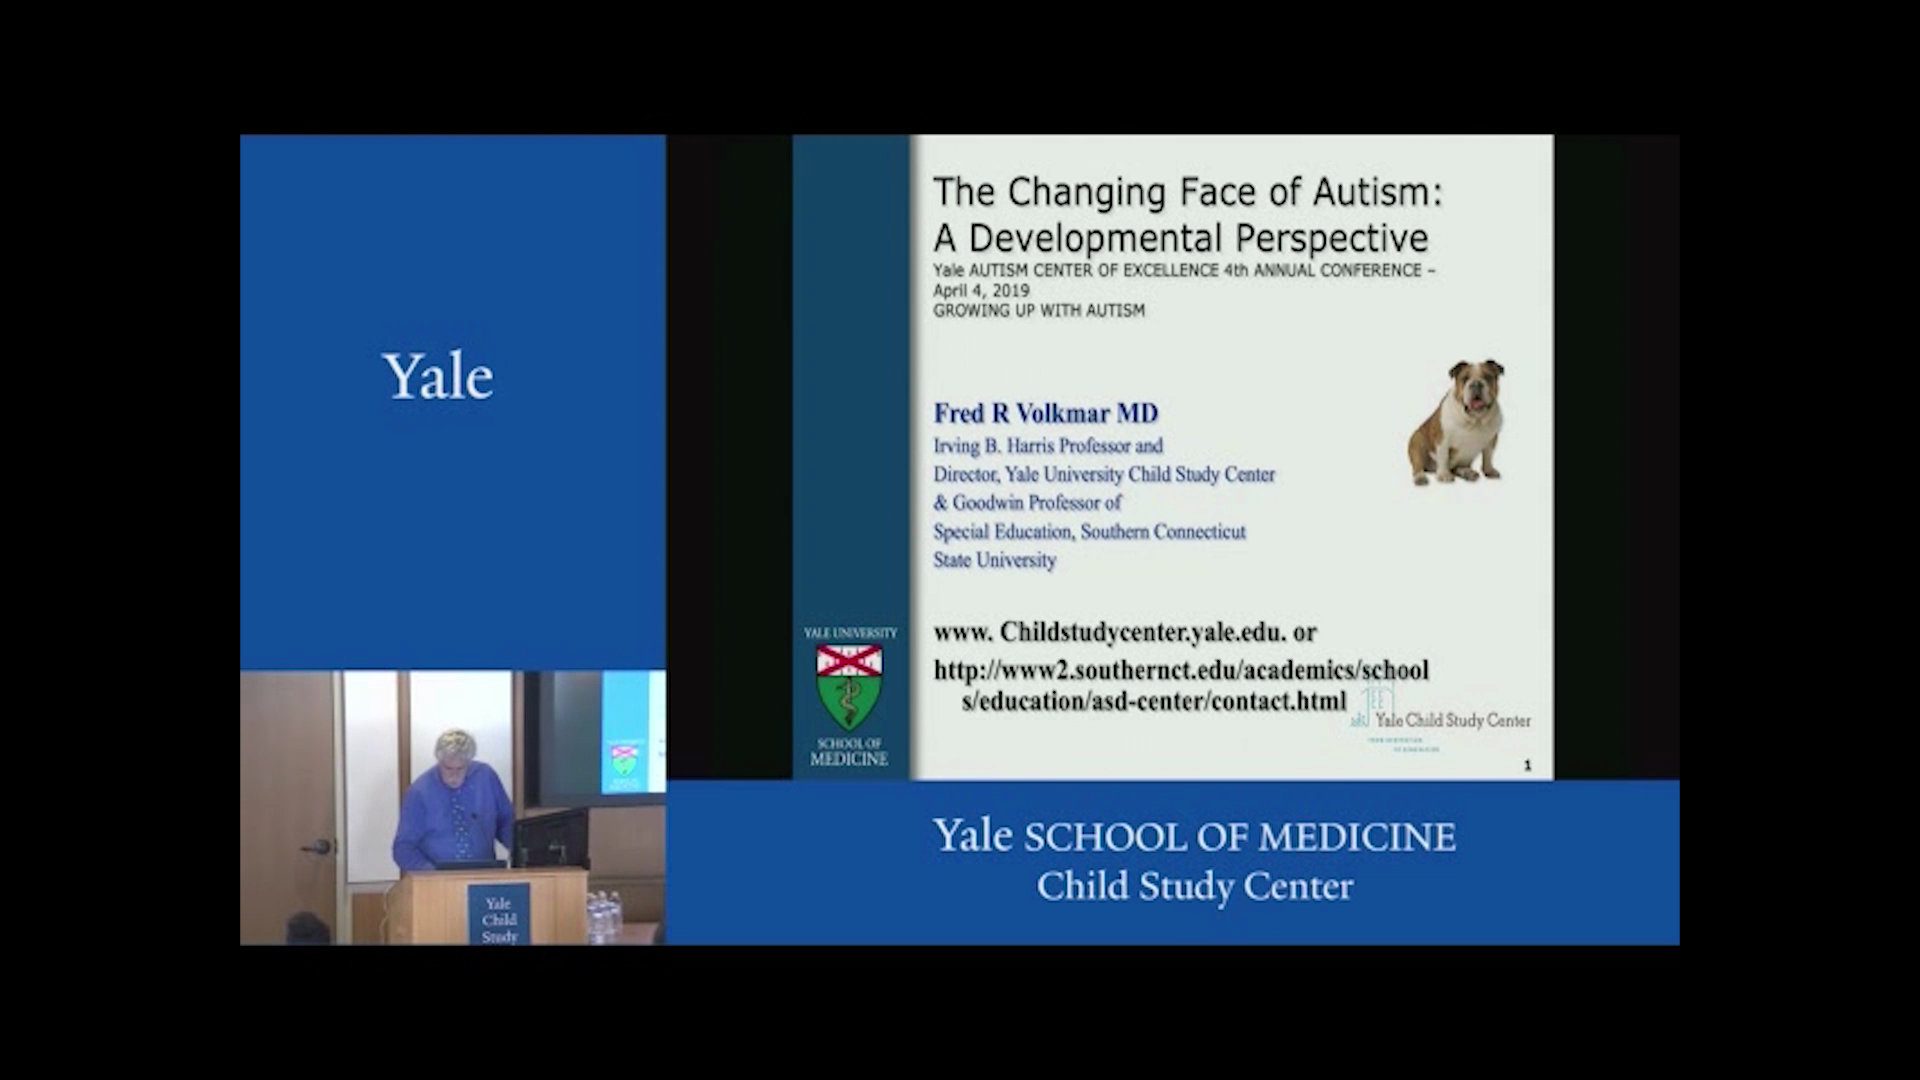 The Changing Face of Autism: A Developmental Perspective